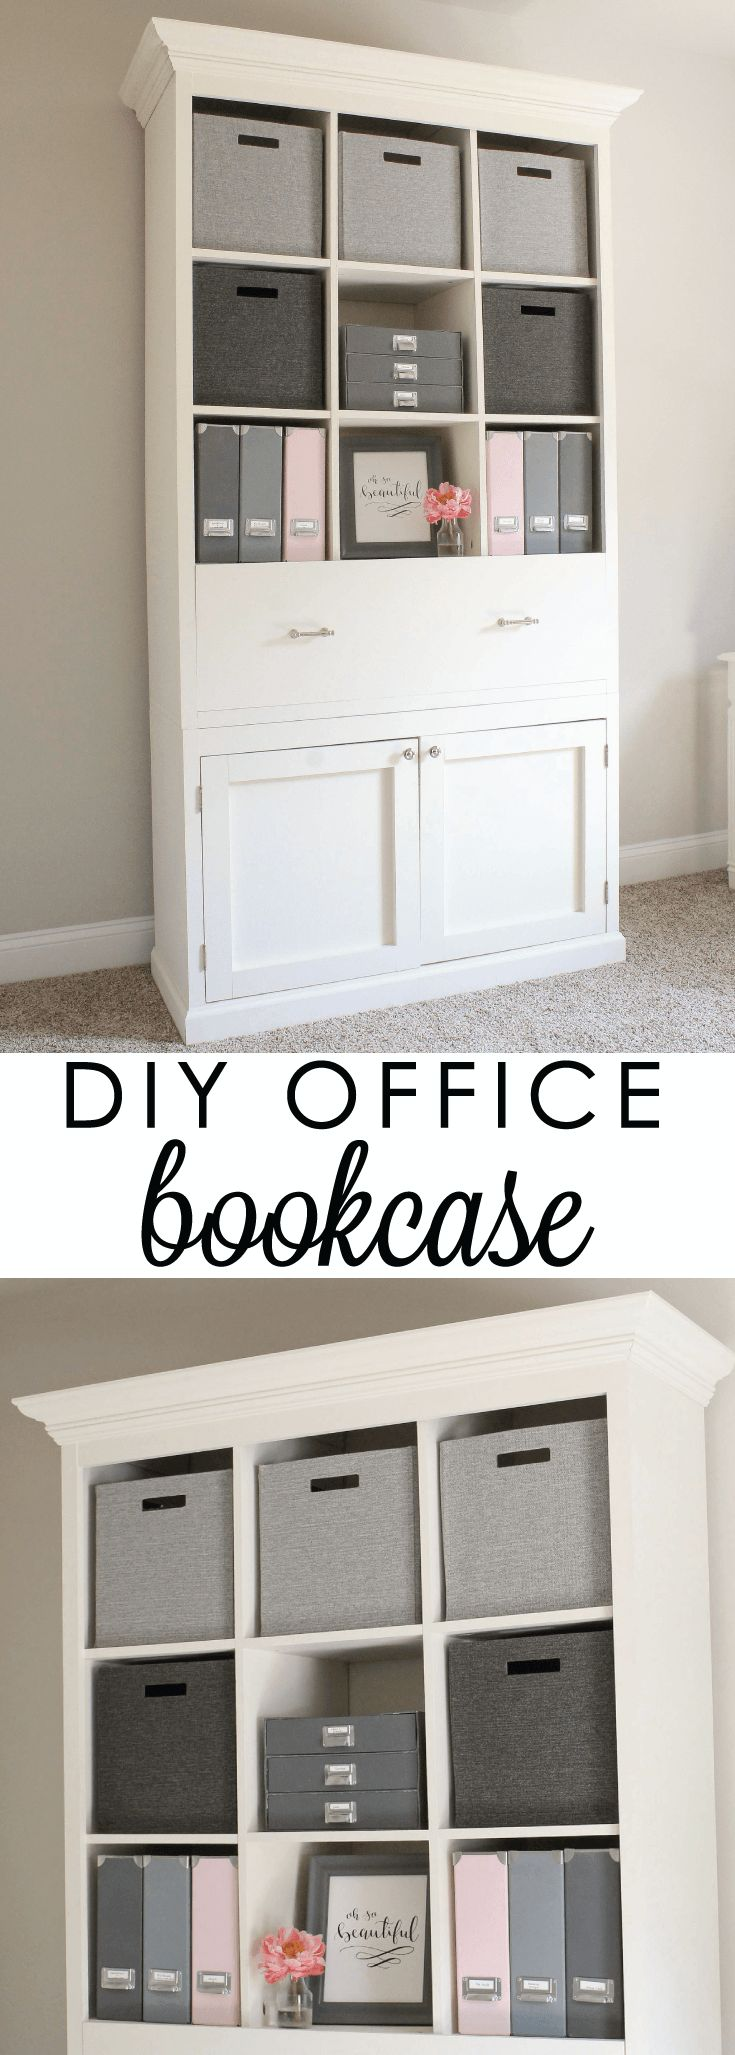 church office decorating ideas. DIY Office Storage Cabinet Bookcase Church Decorating Ideas